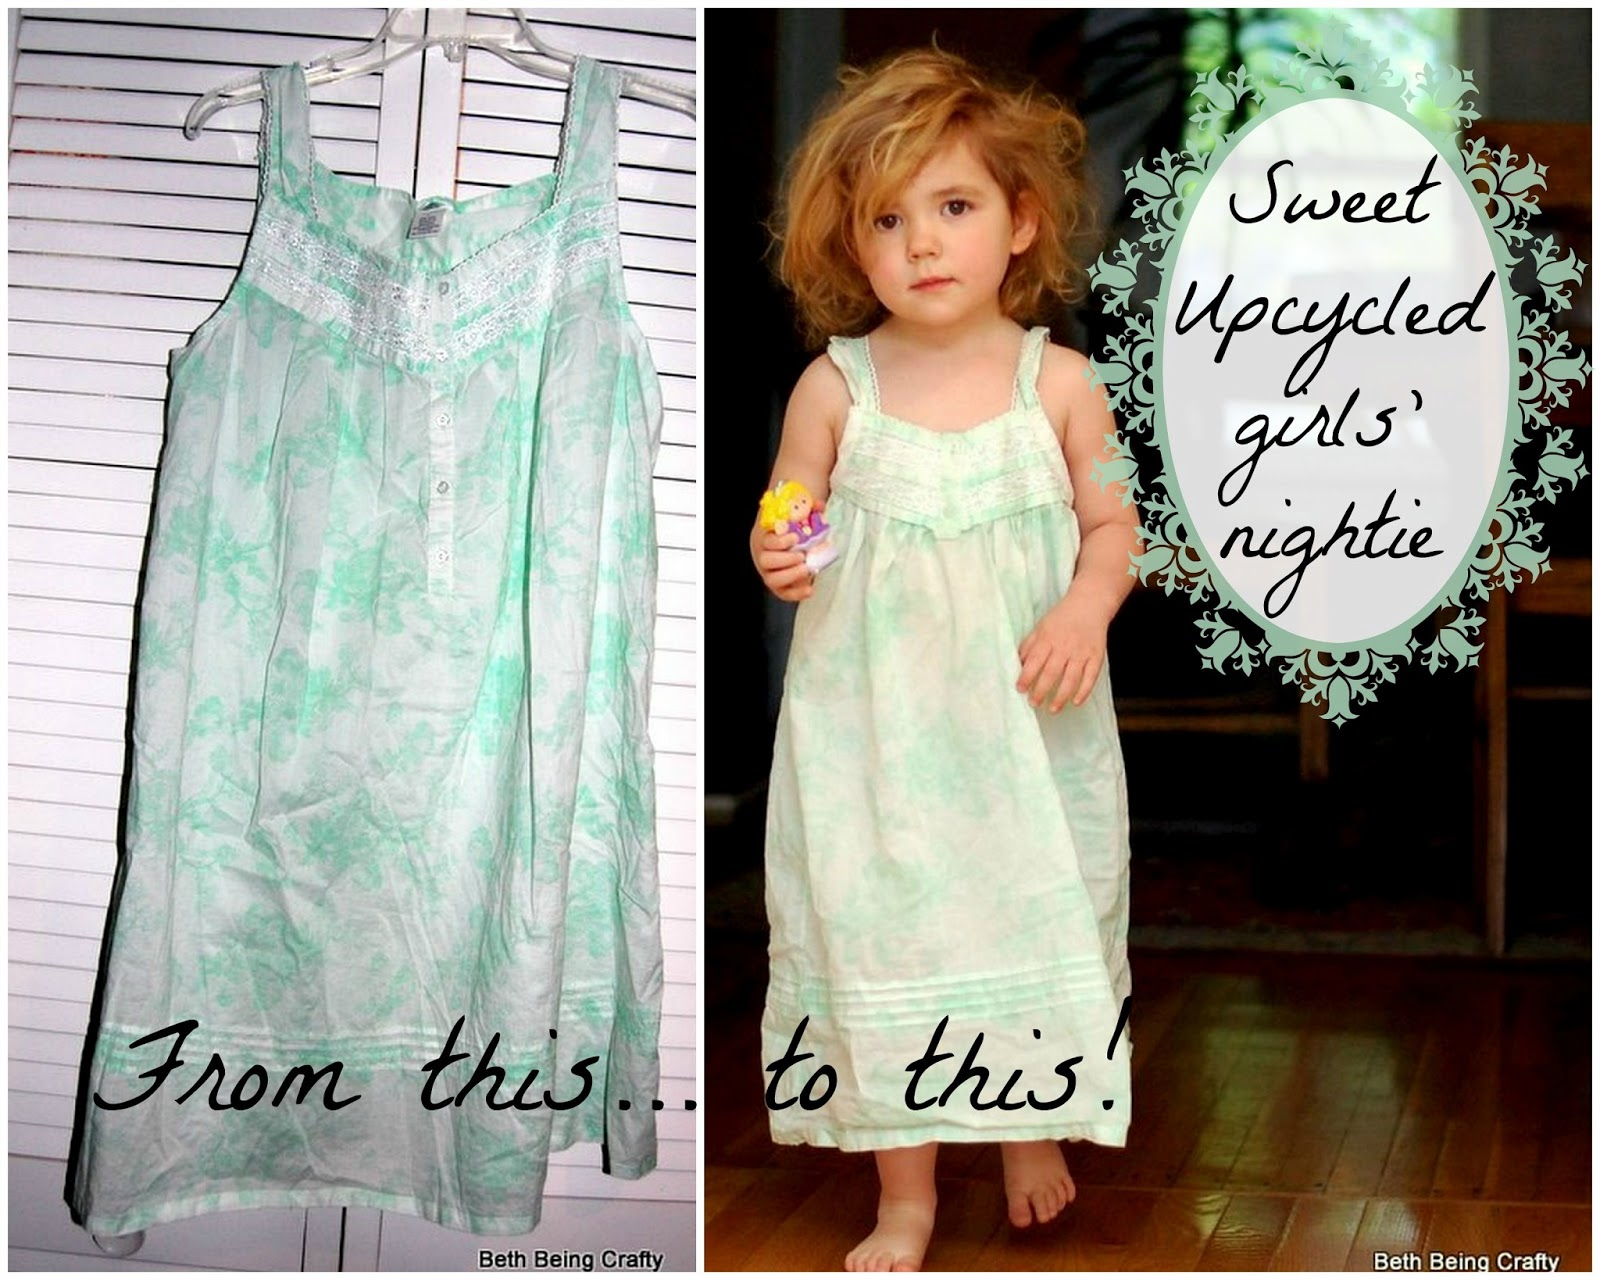 Beth Being Crafty: Upcycled Girls\' Nightgown!